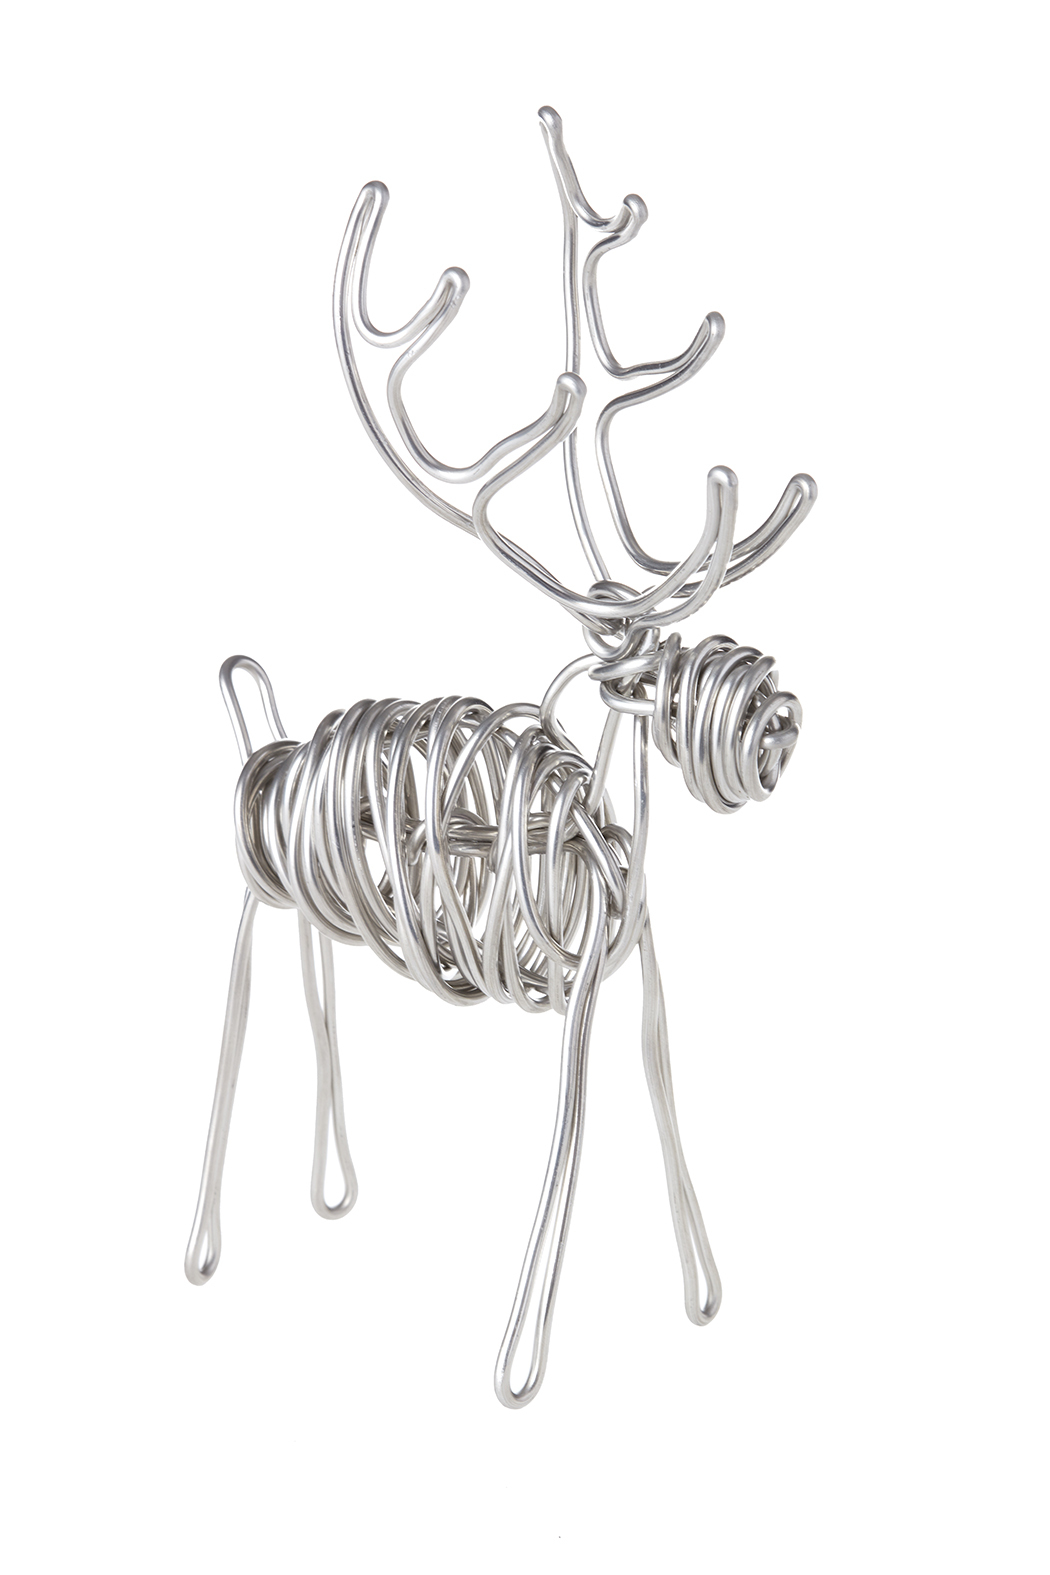 Drawn Metal Studios Deer Sculpture - Back Cropped Image